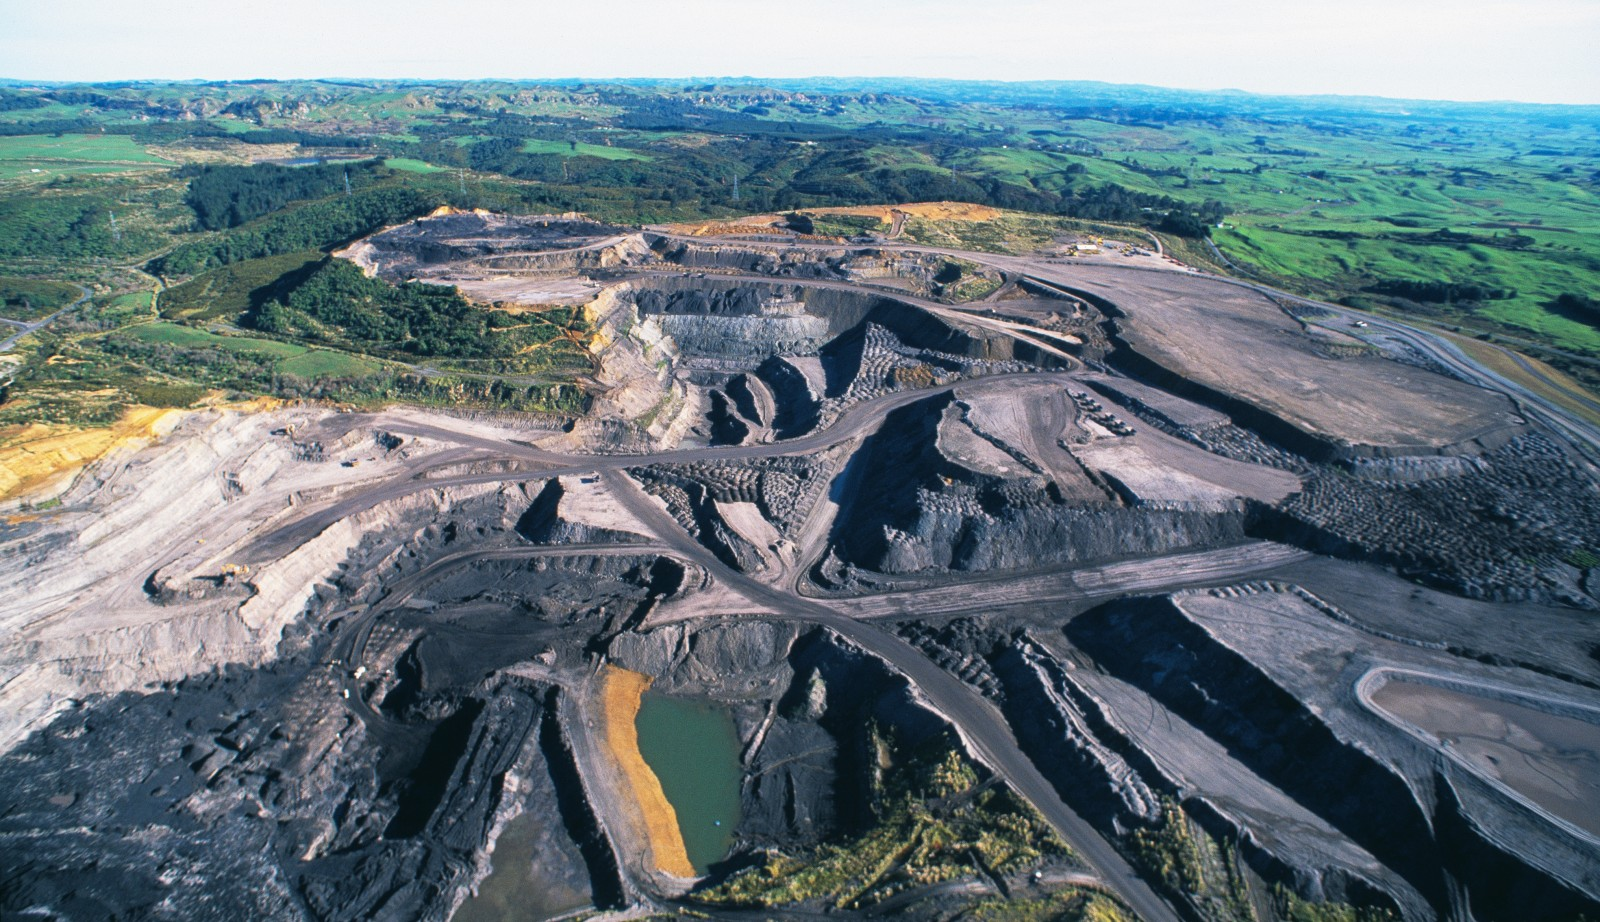 The North Island's largest mine, Rotowaro opencast, a few kilometres west of Huntly, started production in 1997 and has another eight or so years of operational life left. Around a third of Rotowaro's annual output of 1.3 million tonnes of sub-bituminous coal is used in steelmaking, while most of the rest is burned to generate electricity in Huntly Power Station.